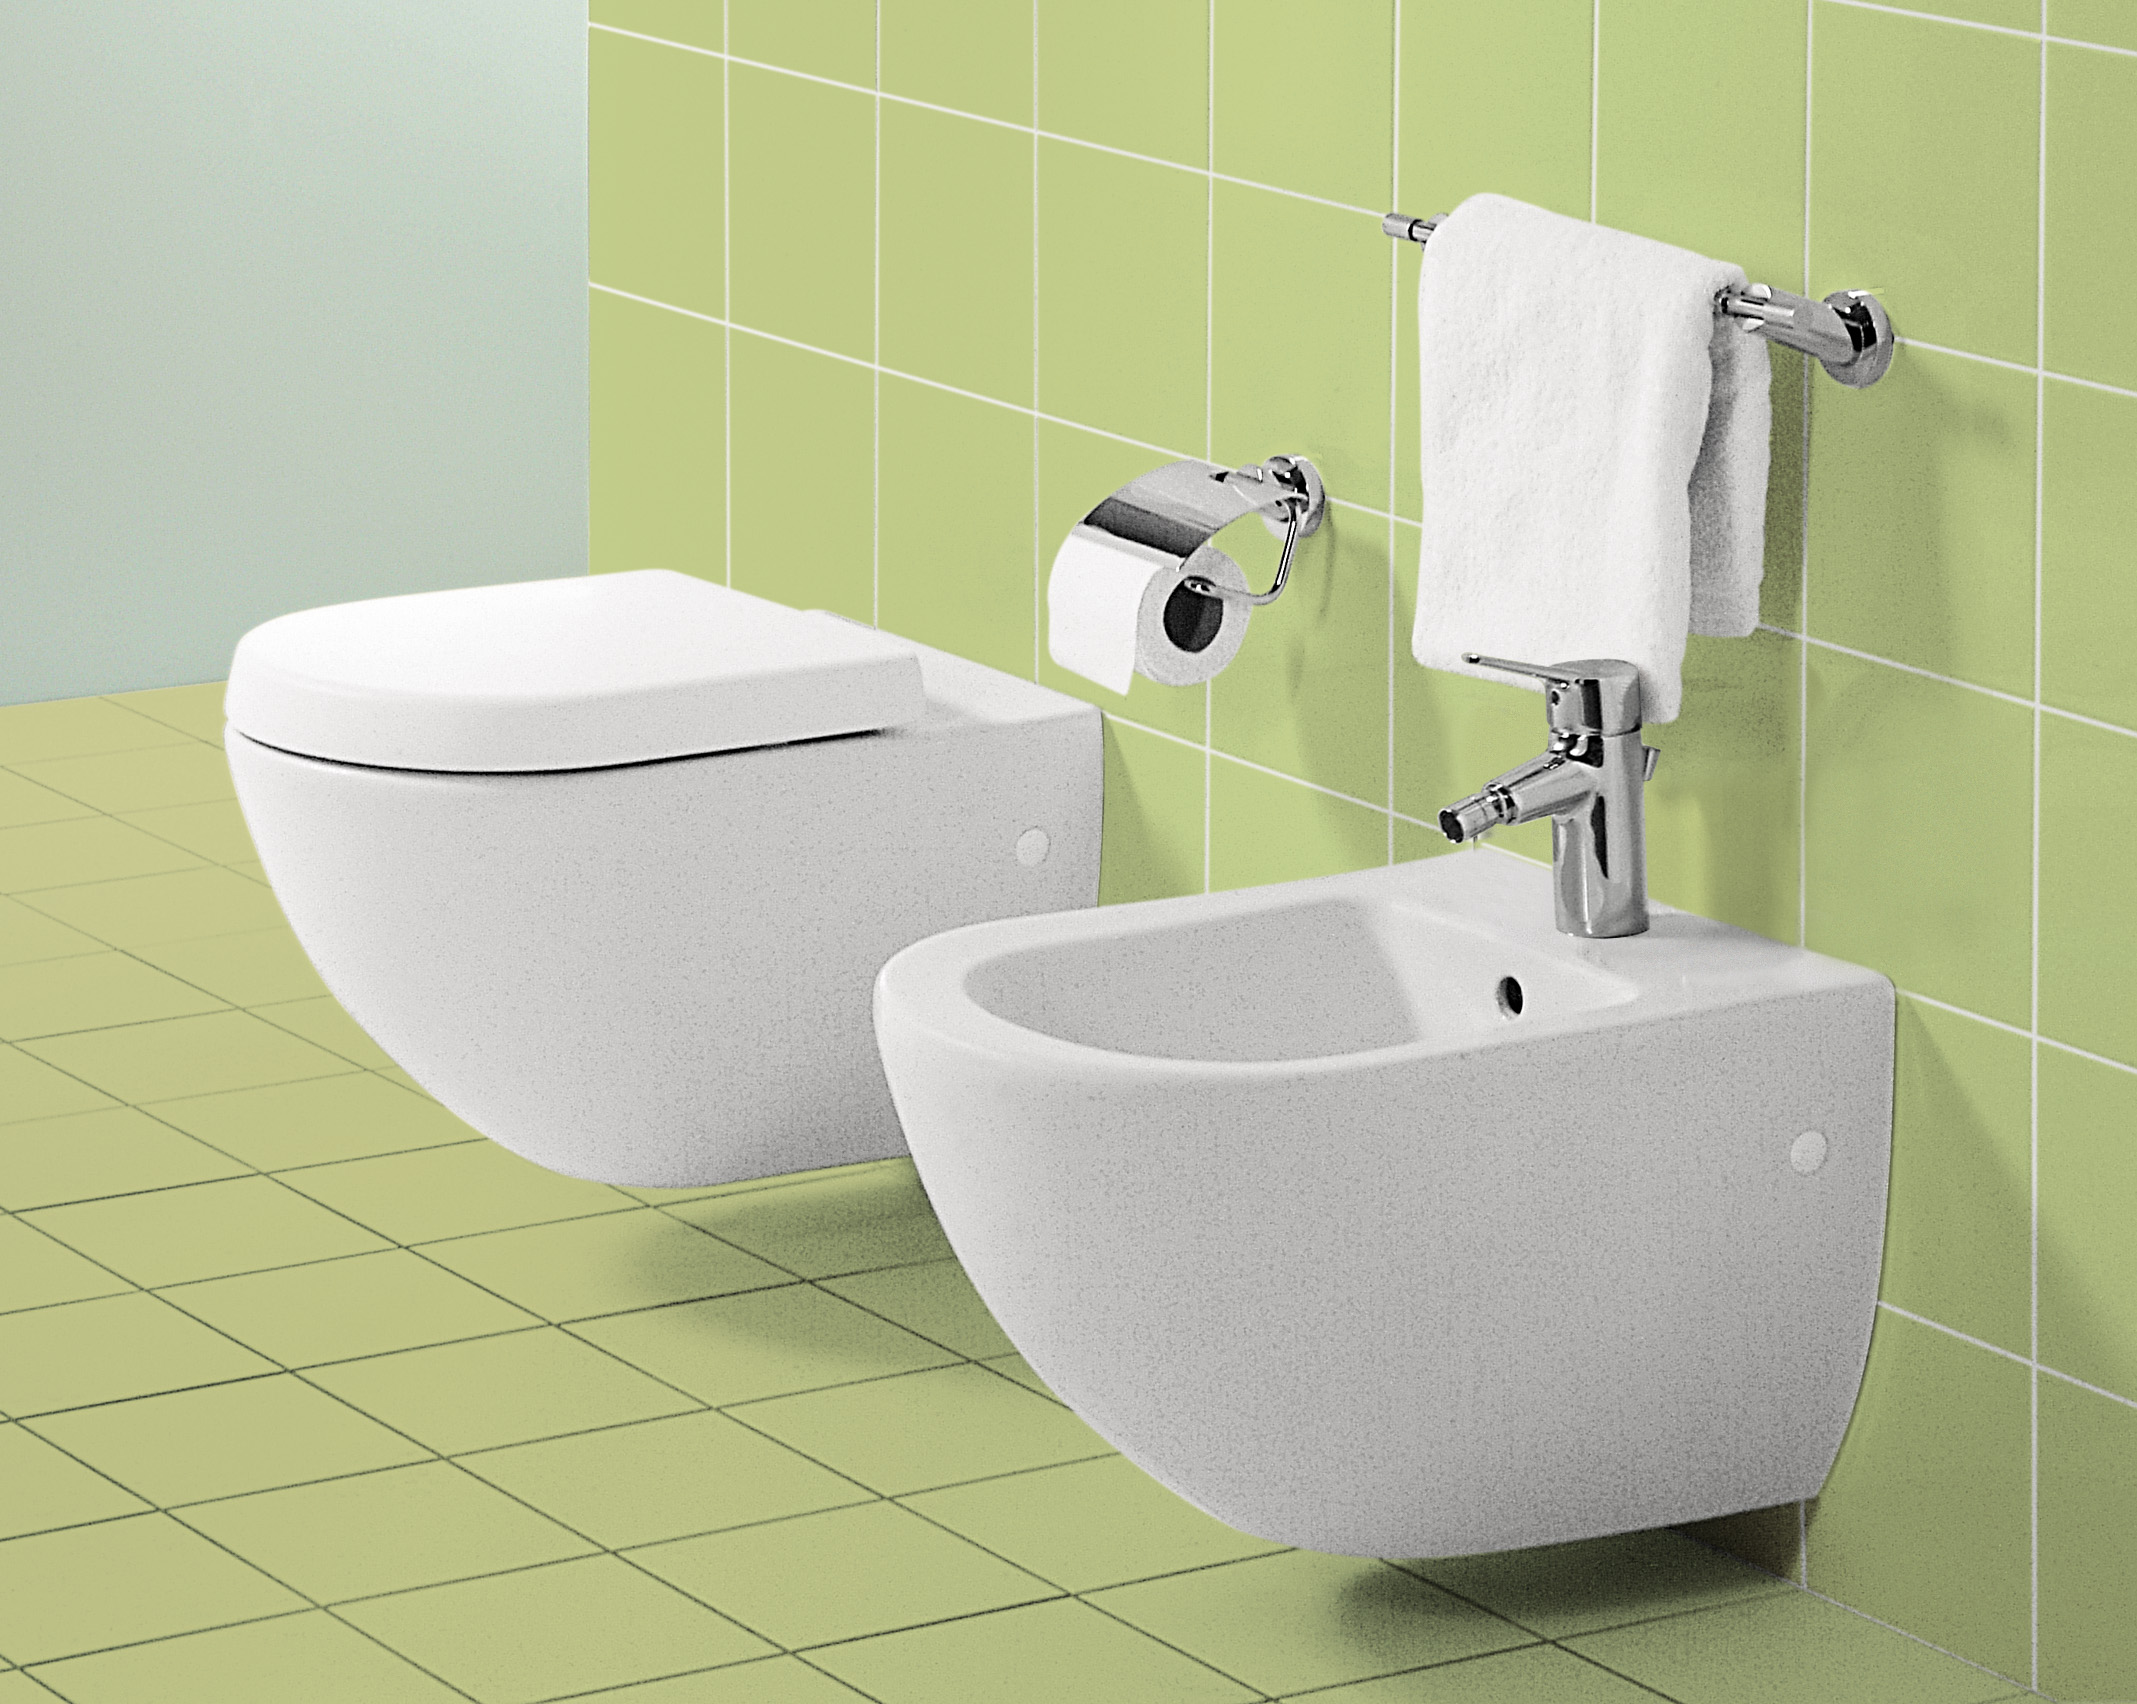 Subway Bidet, Bidet wall-mounted, Bidets, Bidets wall-mounted